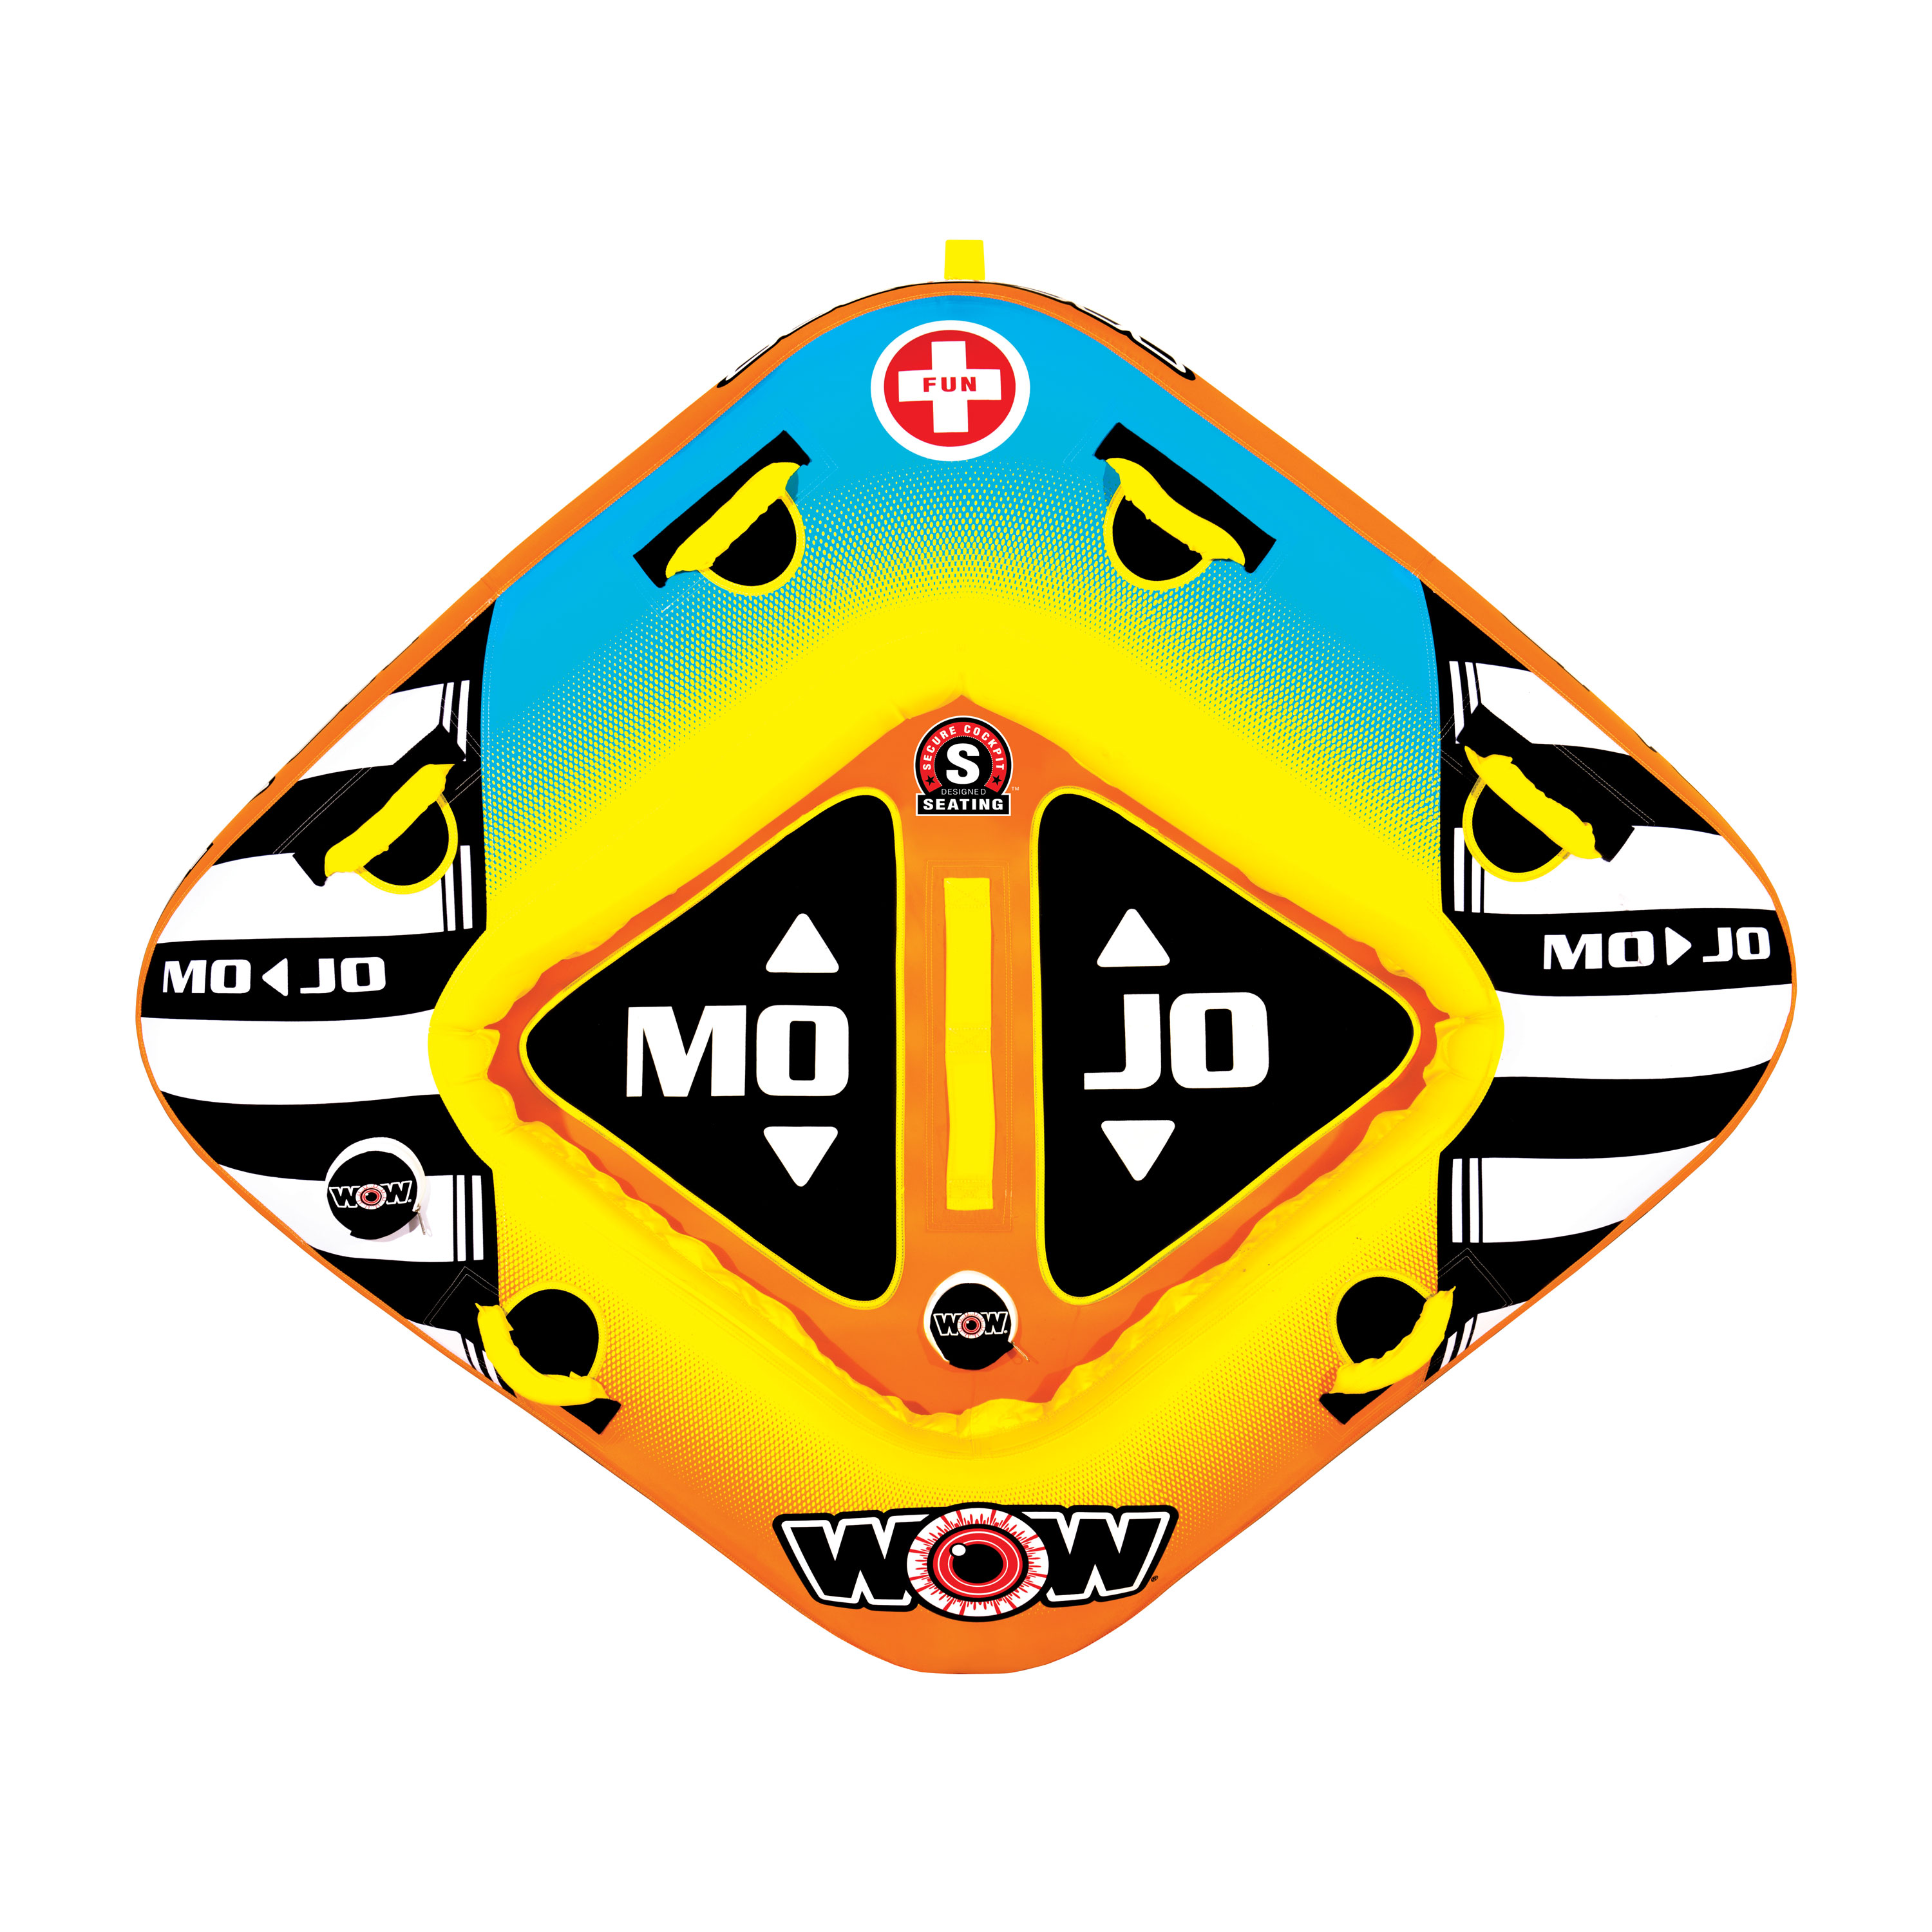 Wow Sports 16-1060 Towable Wow Mojo 1-2 Person